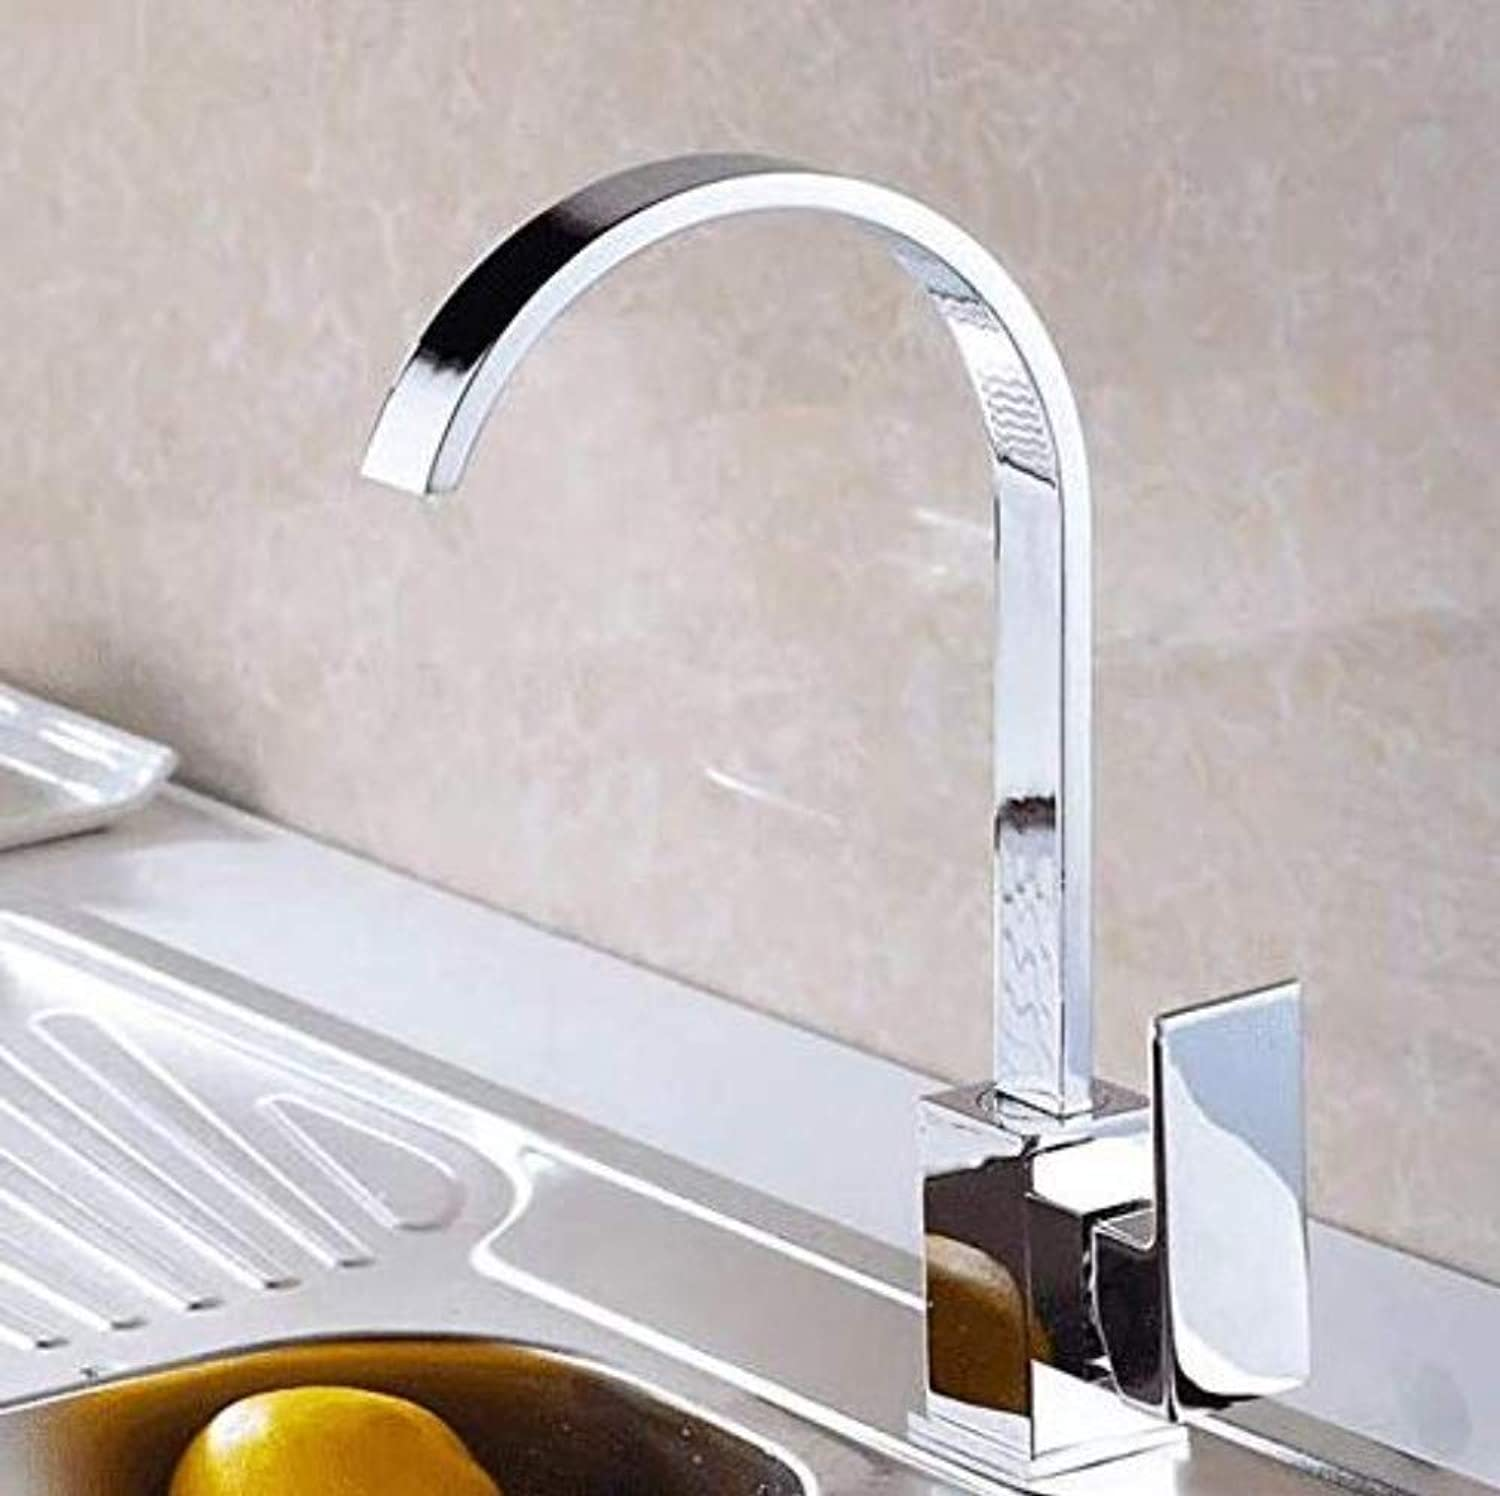 Brass Wall Faucet Chrome Brass Faucettap All Copper Kitchen Faucet Hot and Cold Single Hole redary Tank Faucet Basin Faucet